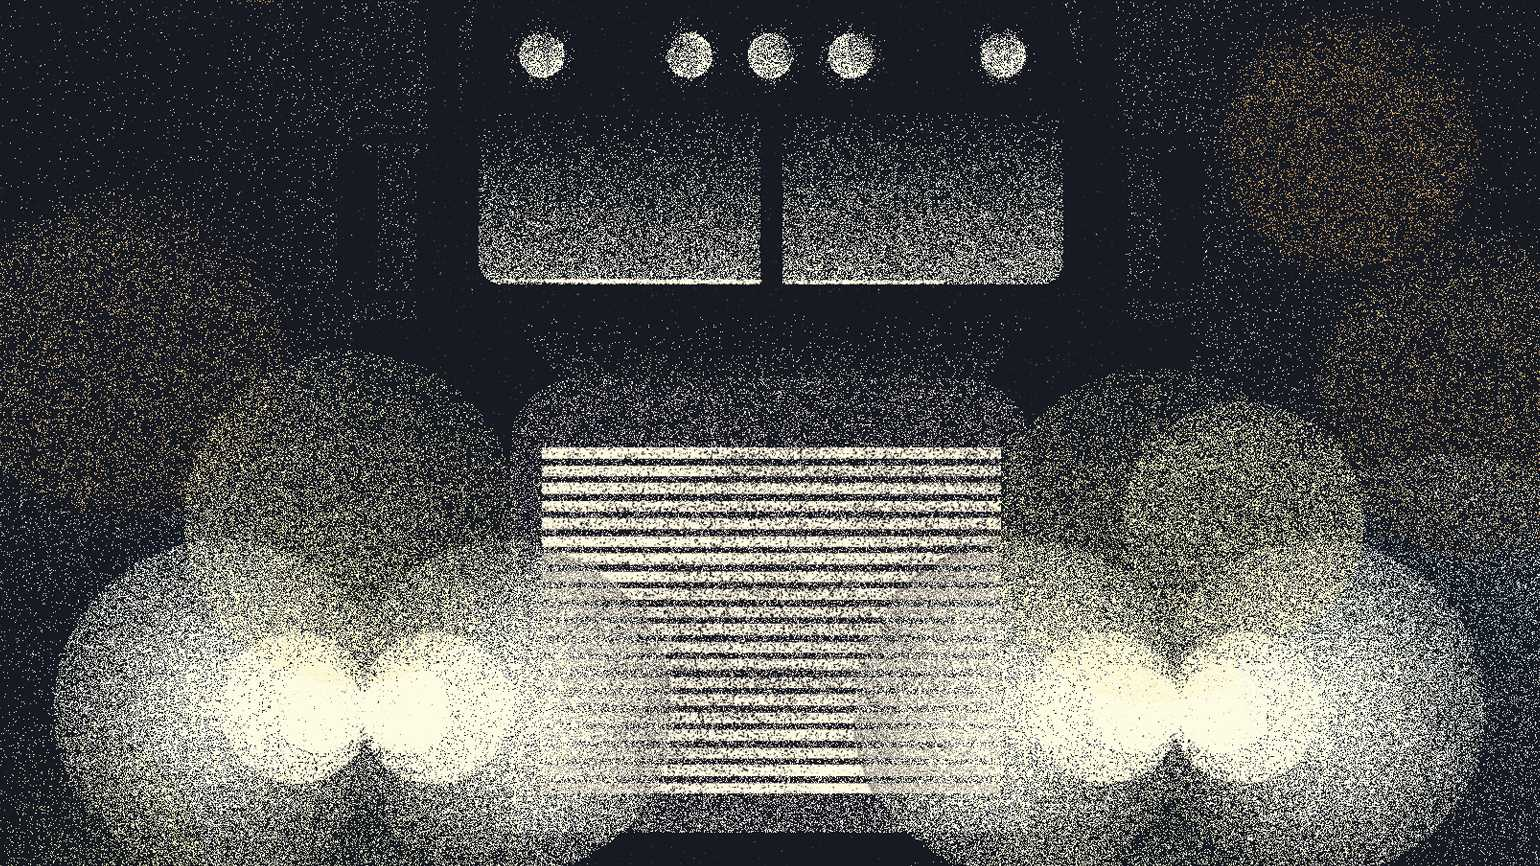 A large truck with gleaming headlights in on the road at night.